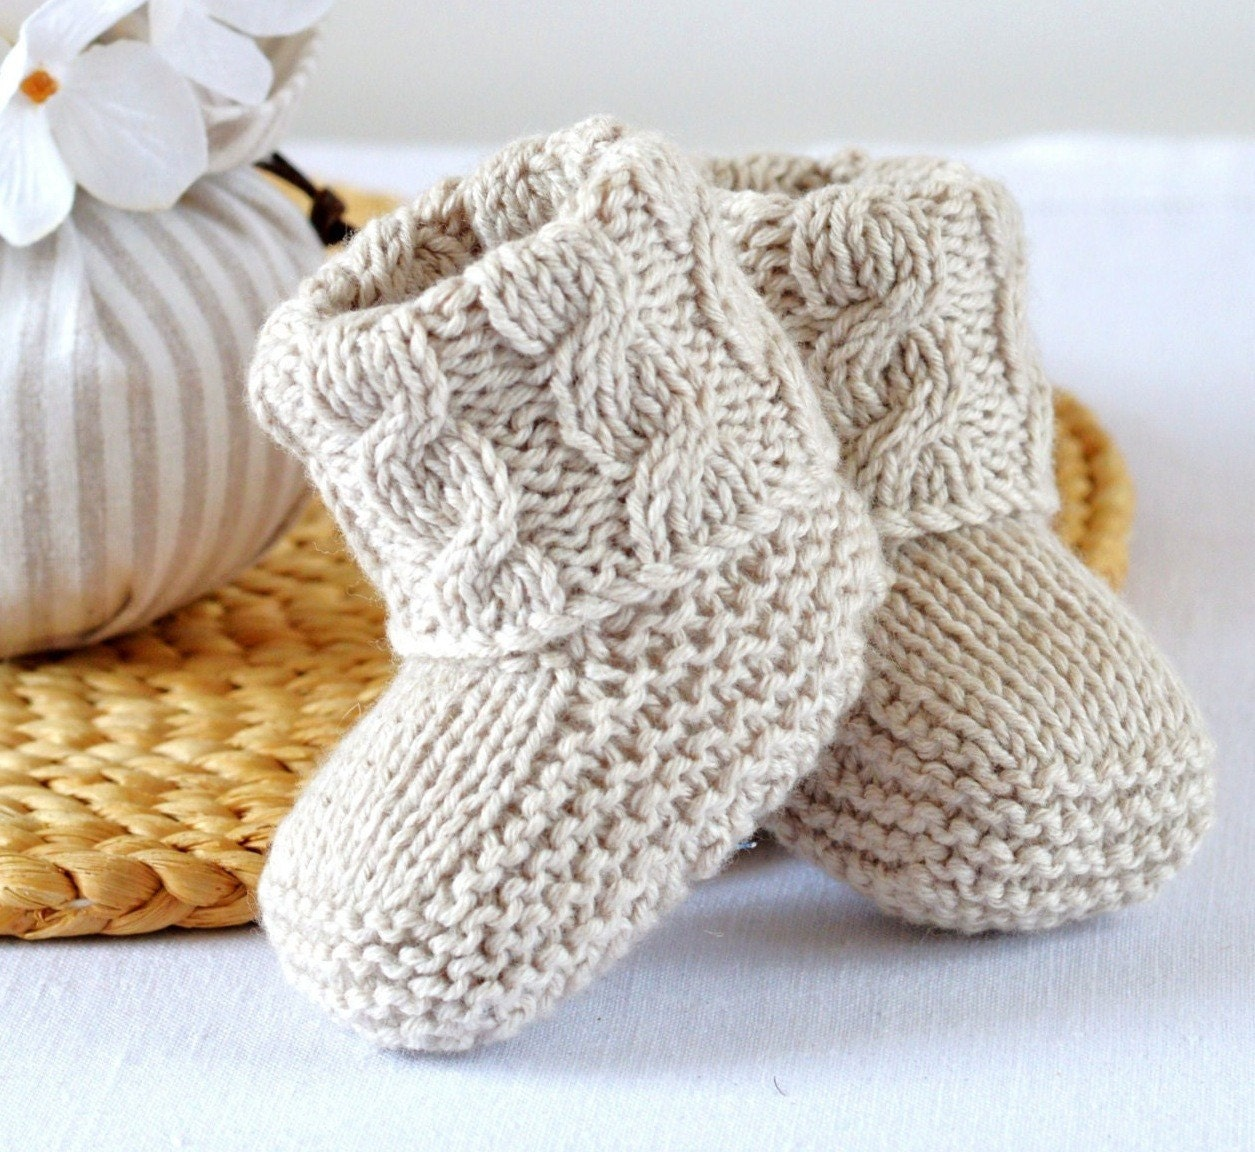 Knitting Baby Booties Patterns : Knitting pattern baby booties cable aran shoes quick and